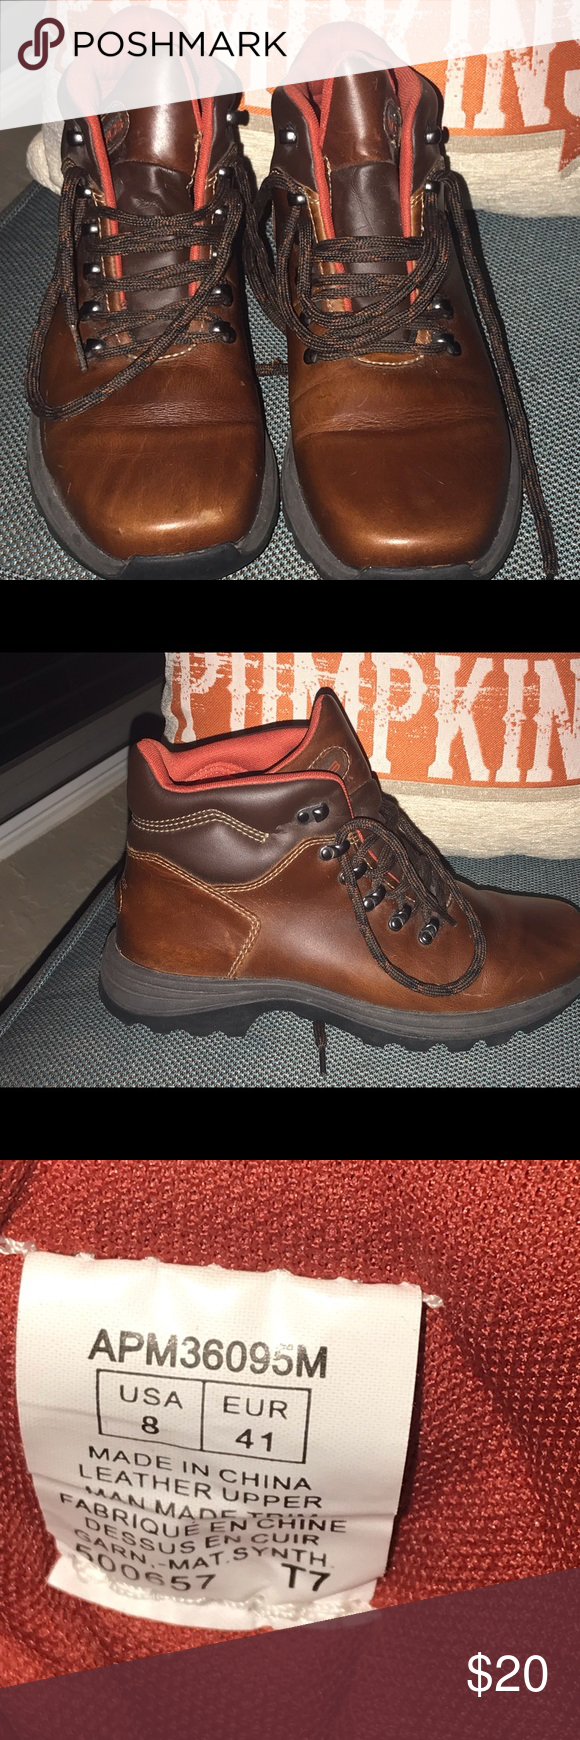 Rockport Xcs Boots In 2018 My Posh Closet Boots Rockport Shoes